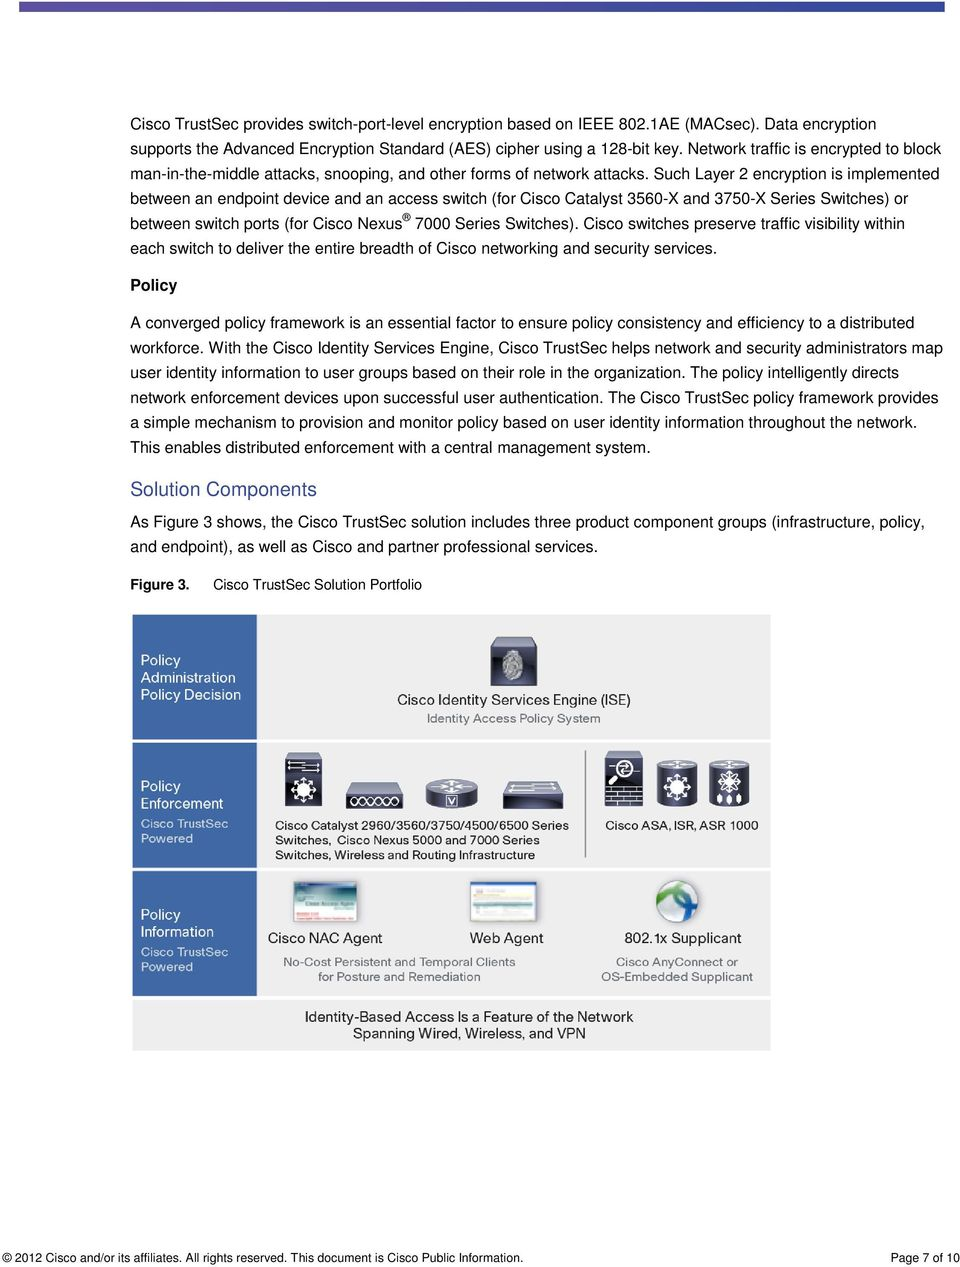 Such Layer 2 encryption is implemented between an endpoint device and an access switch (for Cisco Catalyst 3560-X and 3750-X Series Switches) or between switch ports (for Cisco Nexus 7000 Series